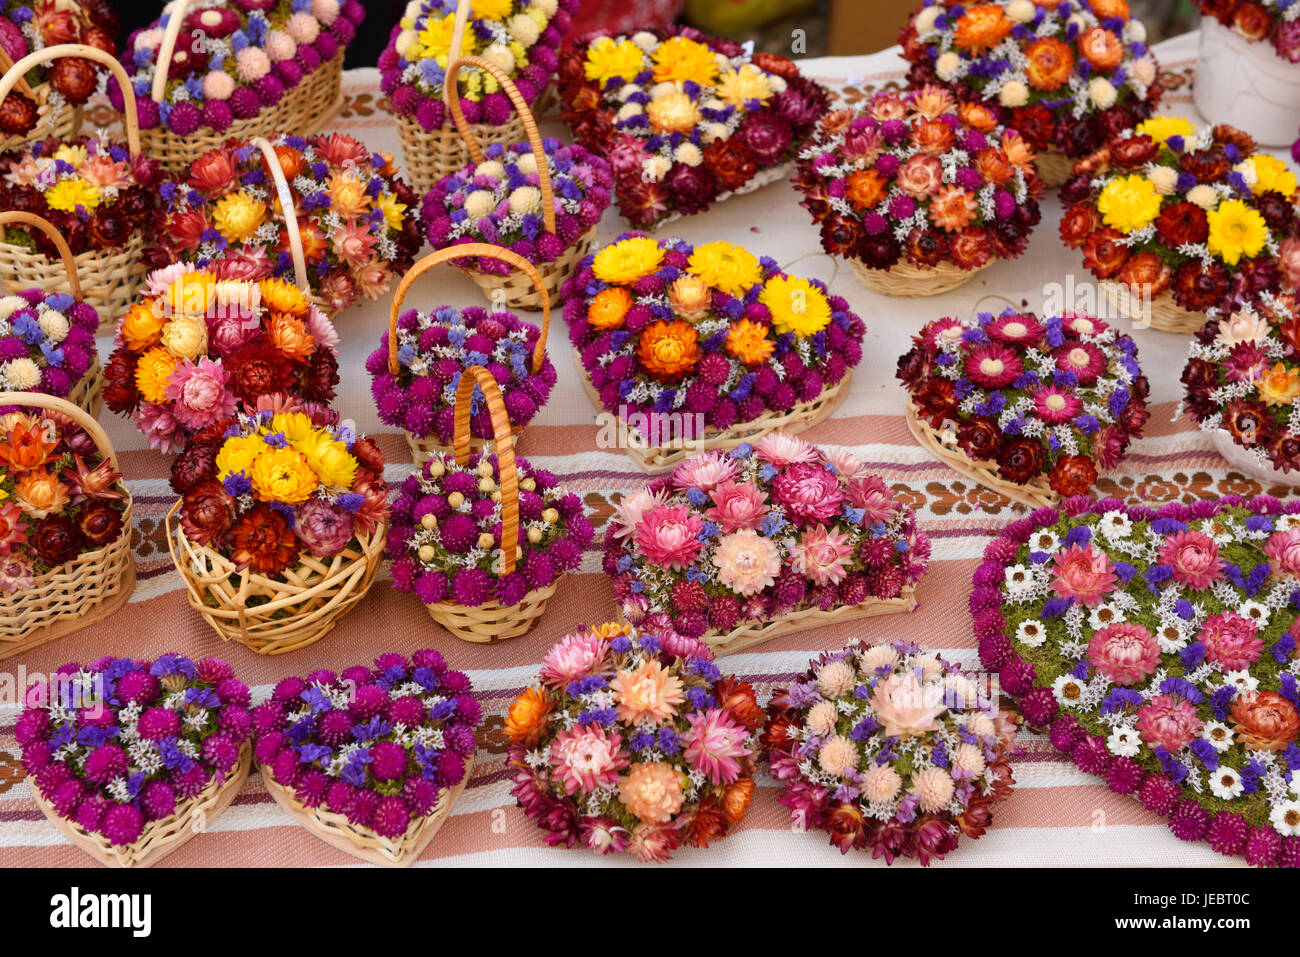 Hand crafted dried pink purple and yellow flowers on a table at an open air stall at the Ljubljana Central Market - Stock Image